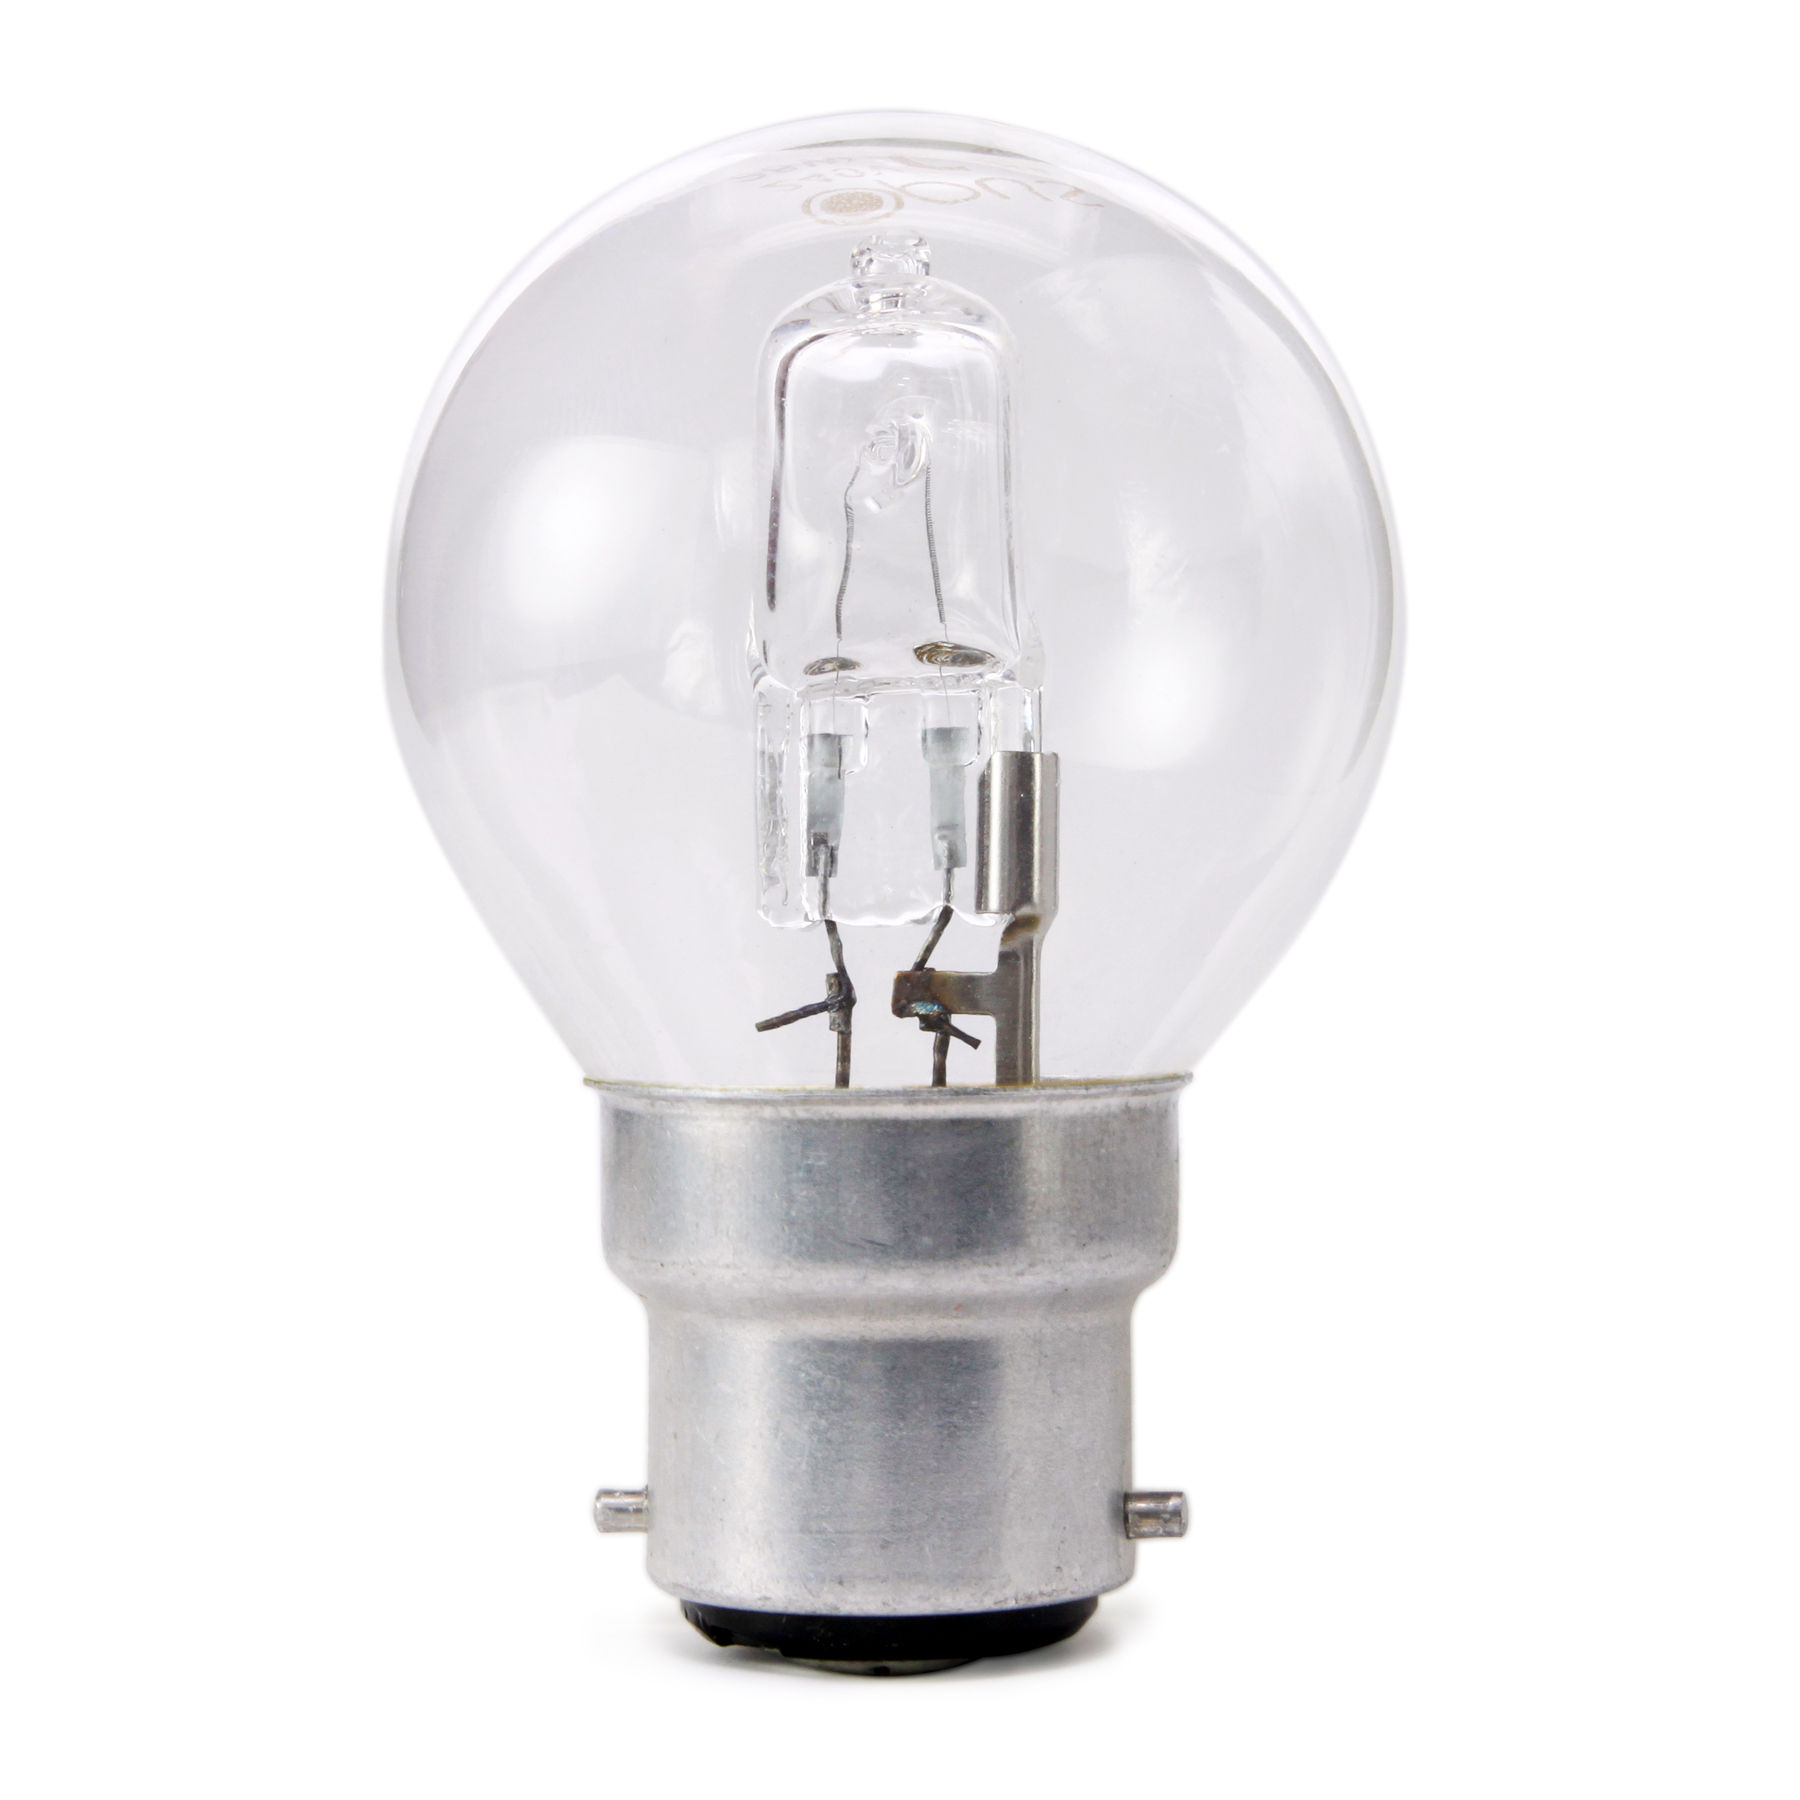 10 x Opus 28W = 40W Candle Bc B22 Bayonet Cap Long Life Clear Eco Halogen Light Bulbs Dimmable Energy Saving Lamps